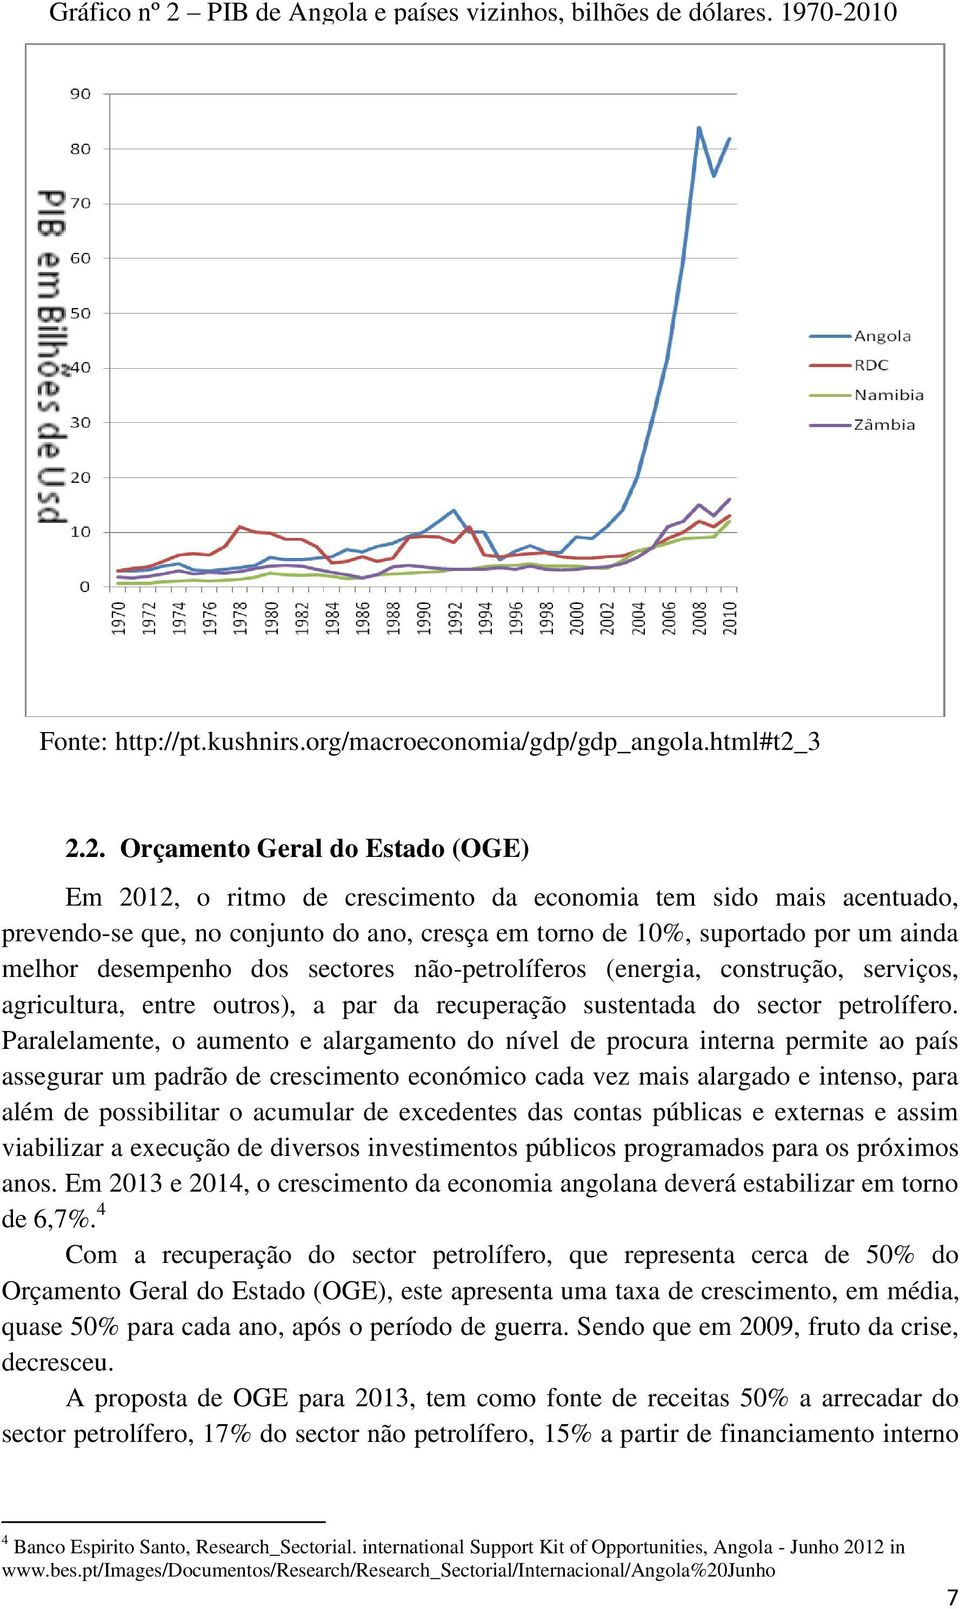 10 Fonte: http://pt.kushnirs.org/macroeconomia/gdp/gdp_angola.html#t2_